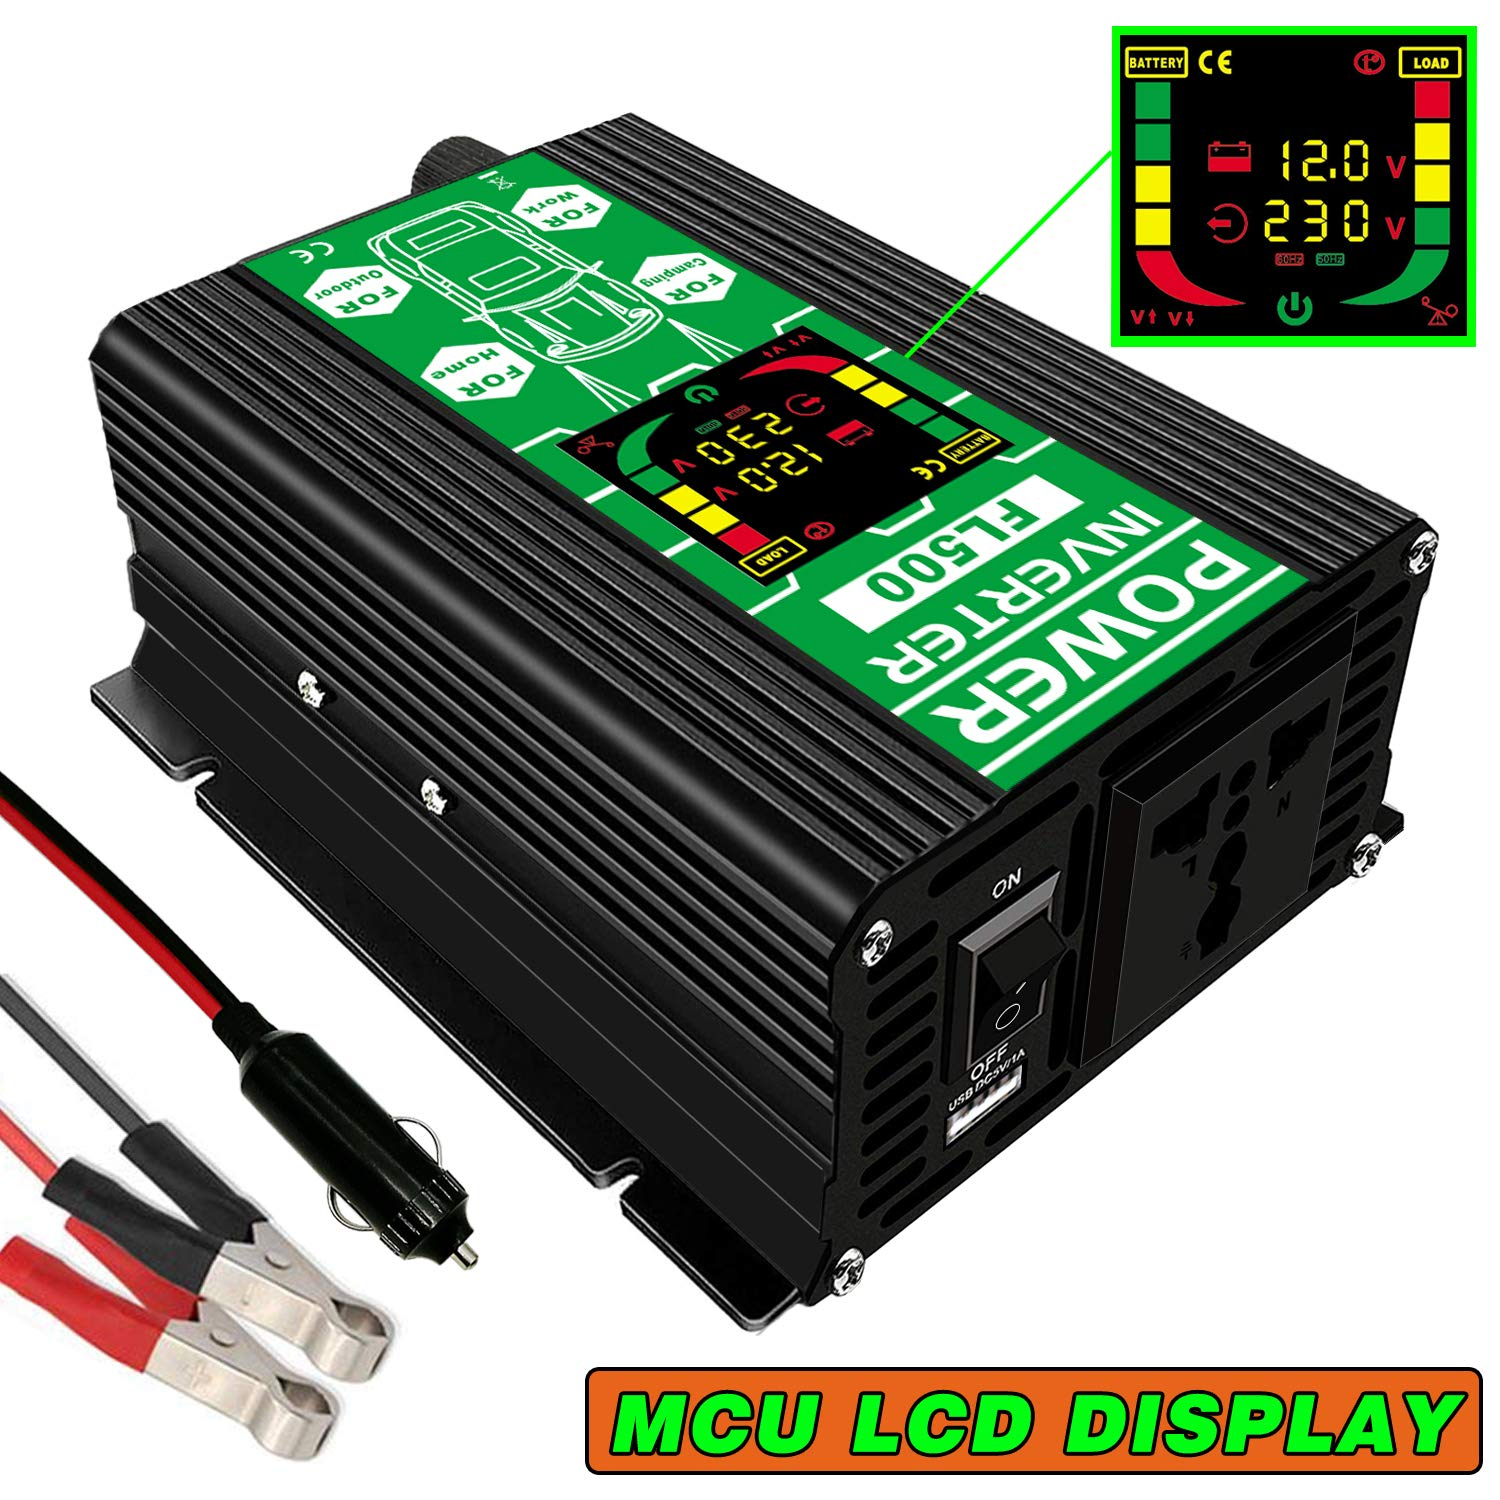 FULAI Convertisseur de tension 12V 220V 500W Transformateur de tension DC 12V vers 220V 500W Onduleur avec Port USB & É cran LCD Guangzhou Fulai Electric Co. Ltd.